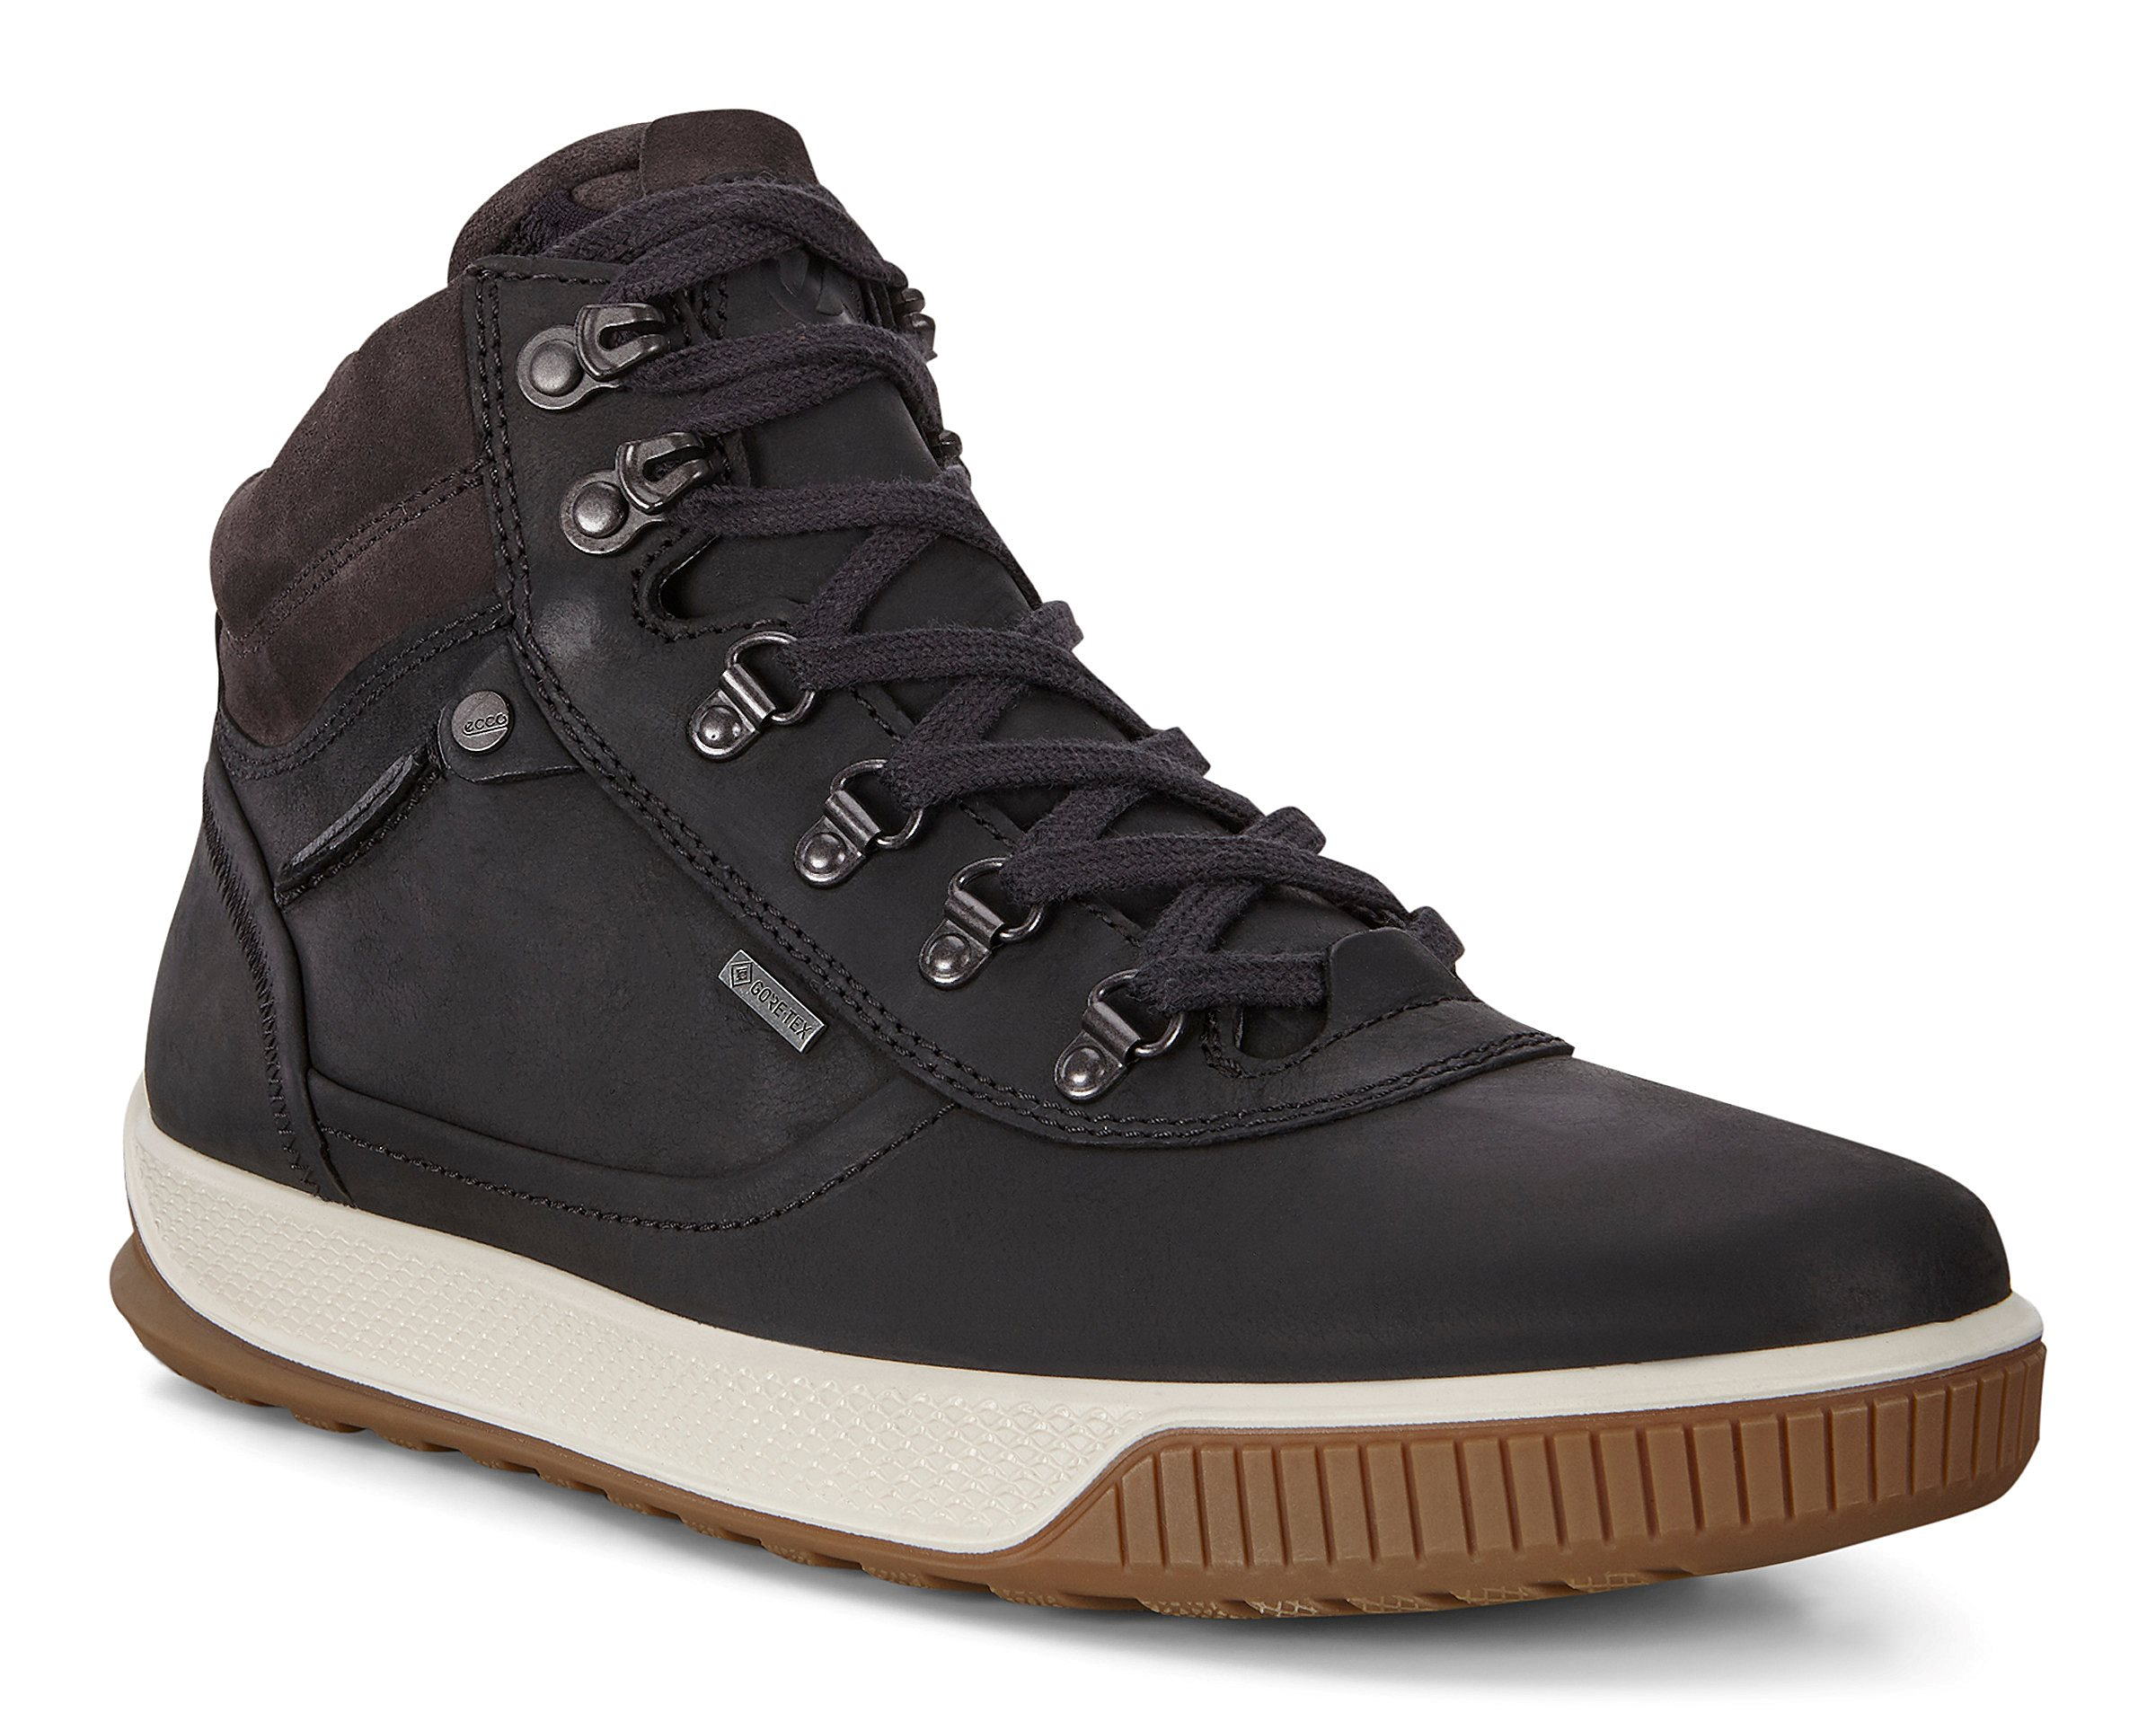 SHOES BOOTS ECCO BYWAY TRED